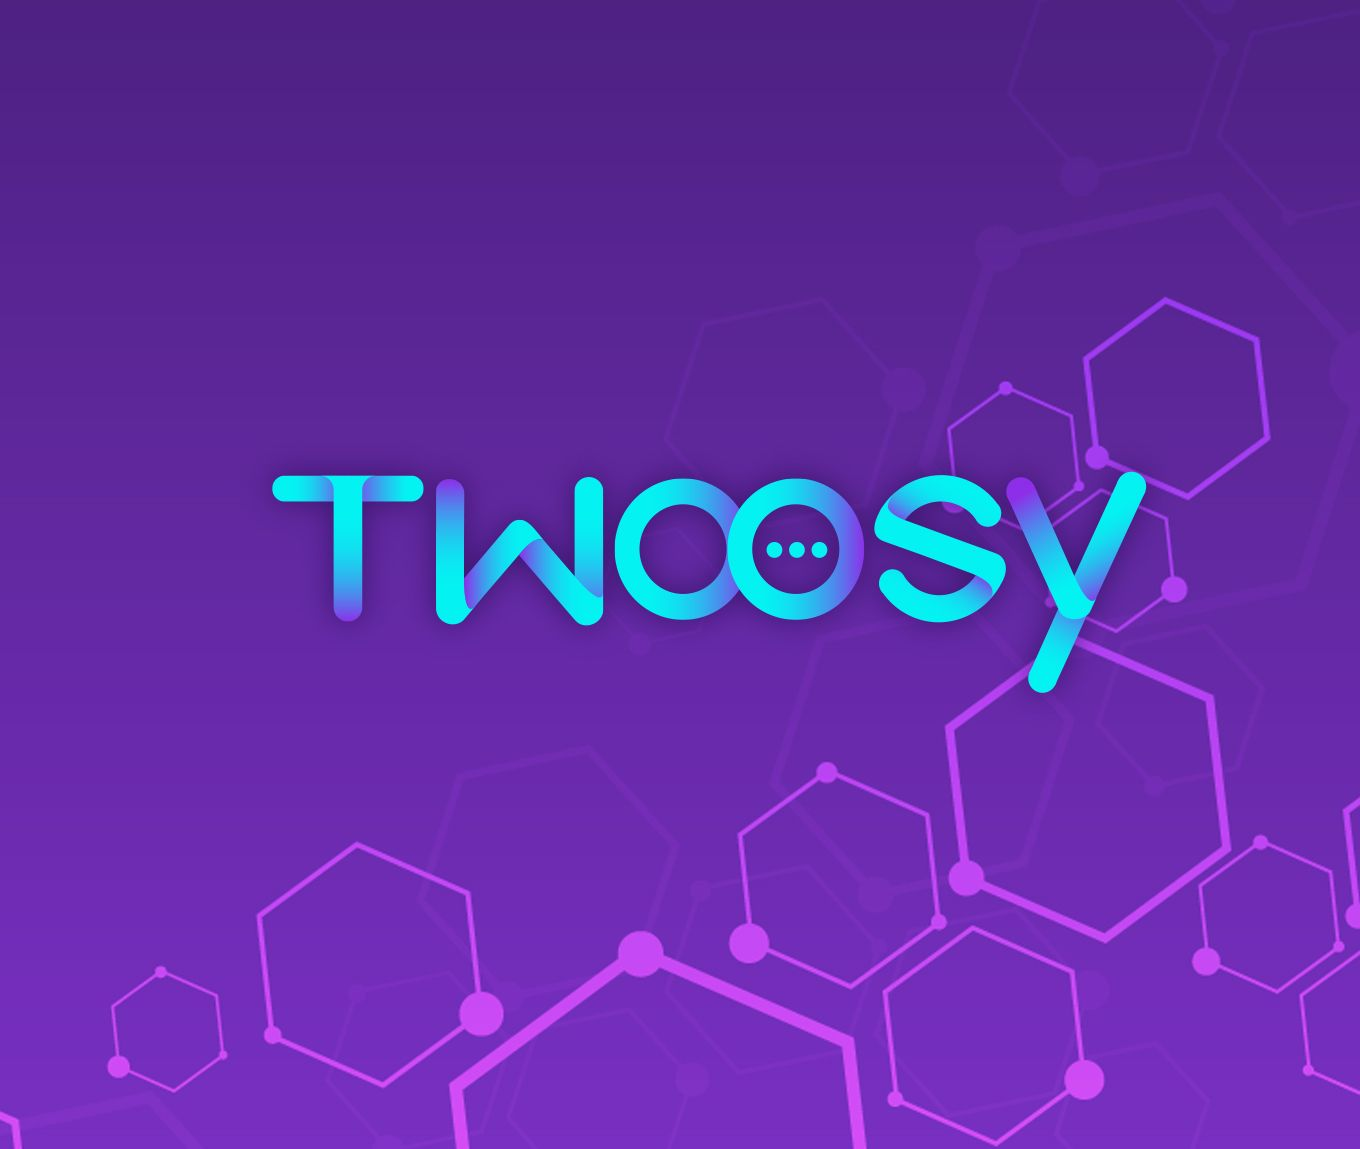 Twoosy designed by Design Major